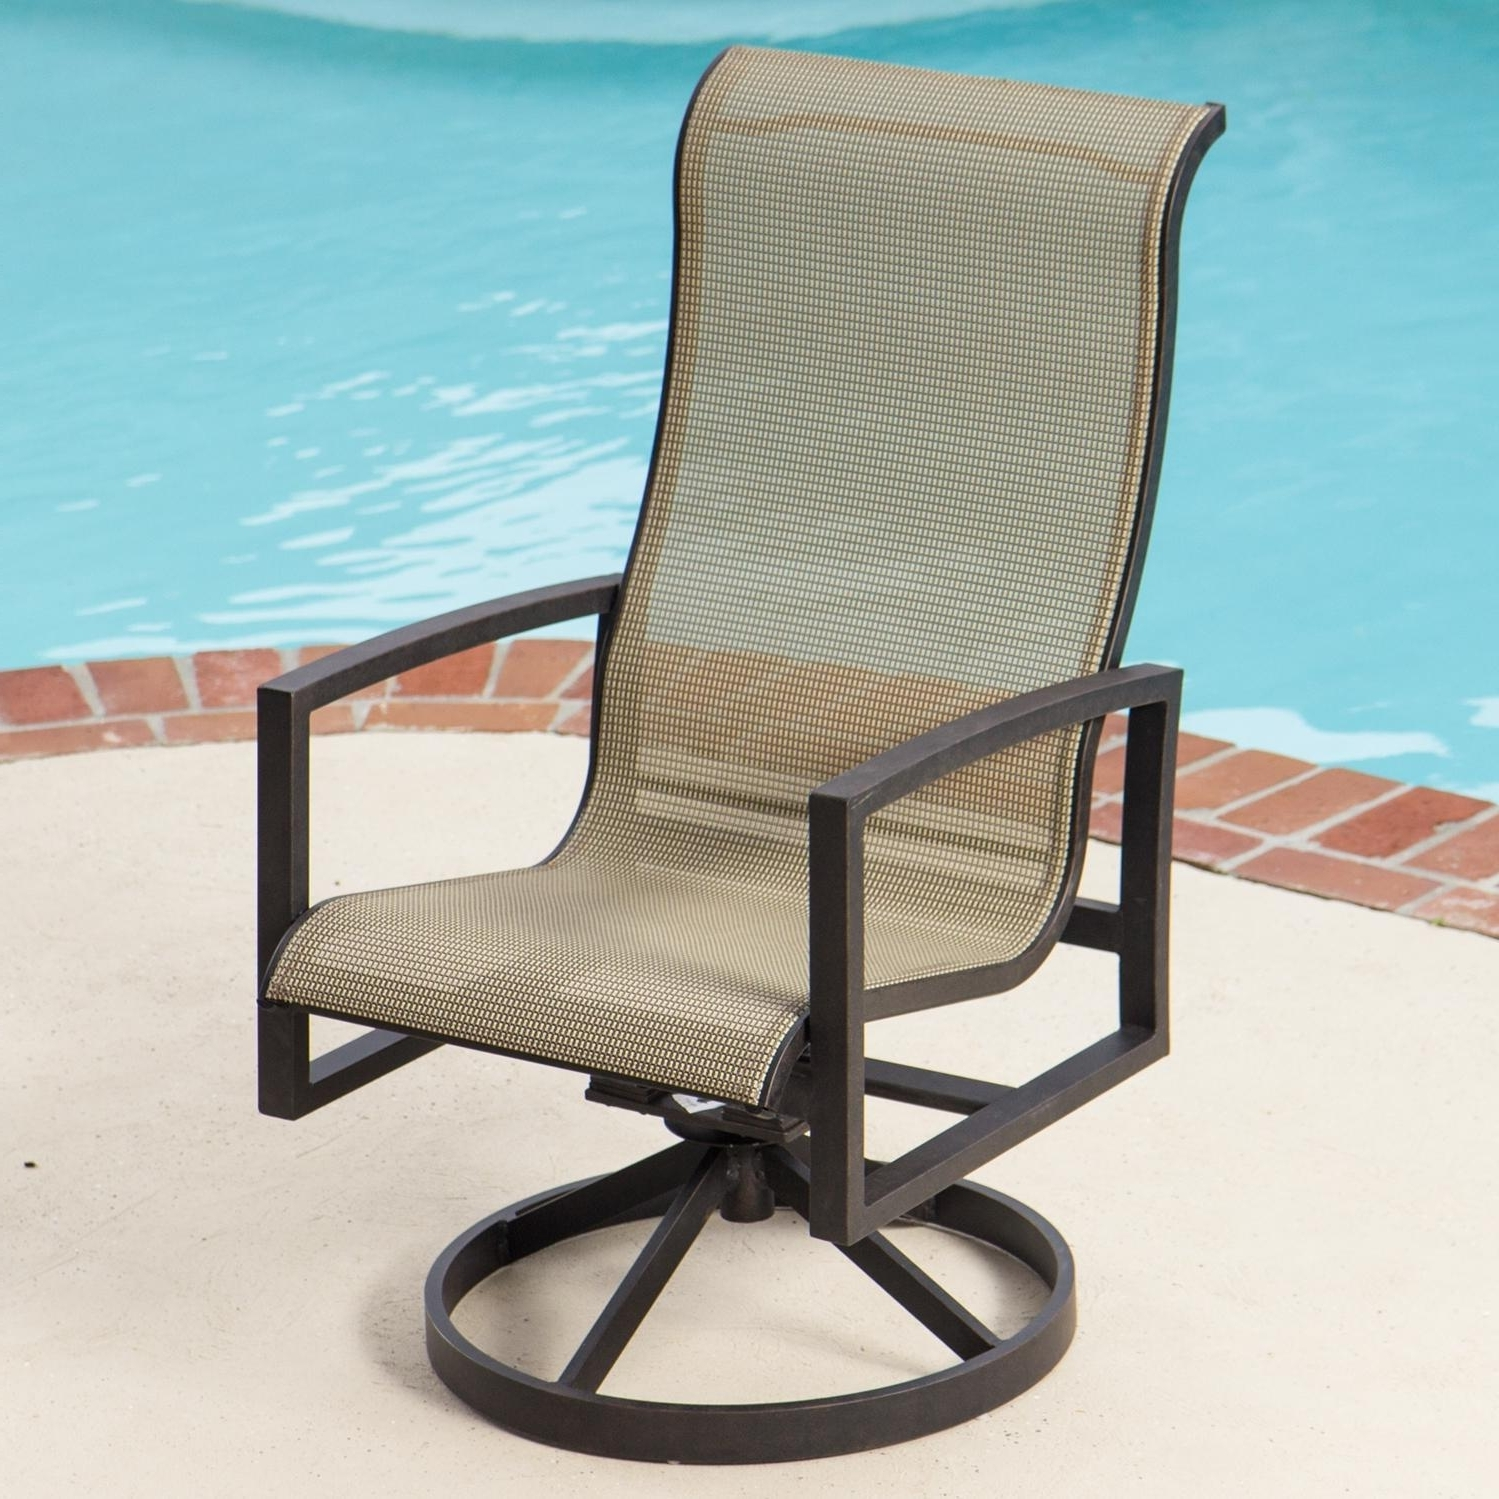 Popular Acadia Sling Patio Swivel Rocker Dining Chairlakeview Outdoor With Regard To Patio Sling Rocking Chairs (View 15 of 20)